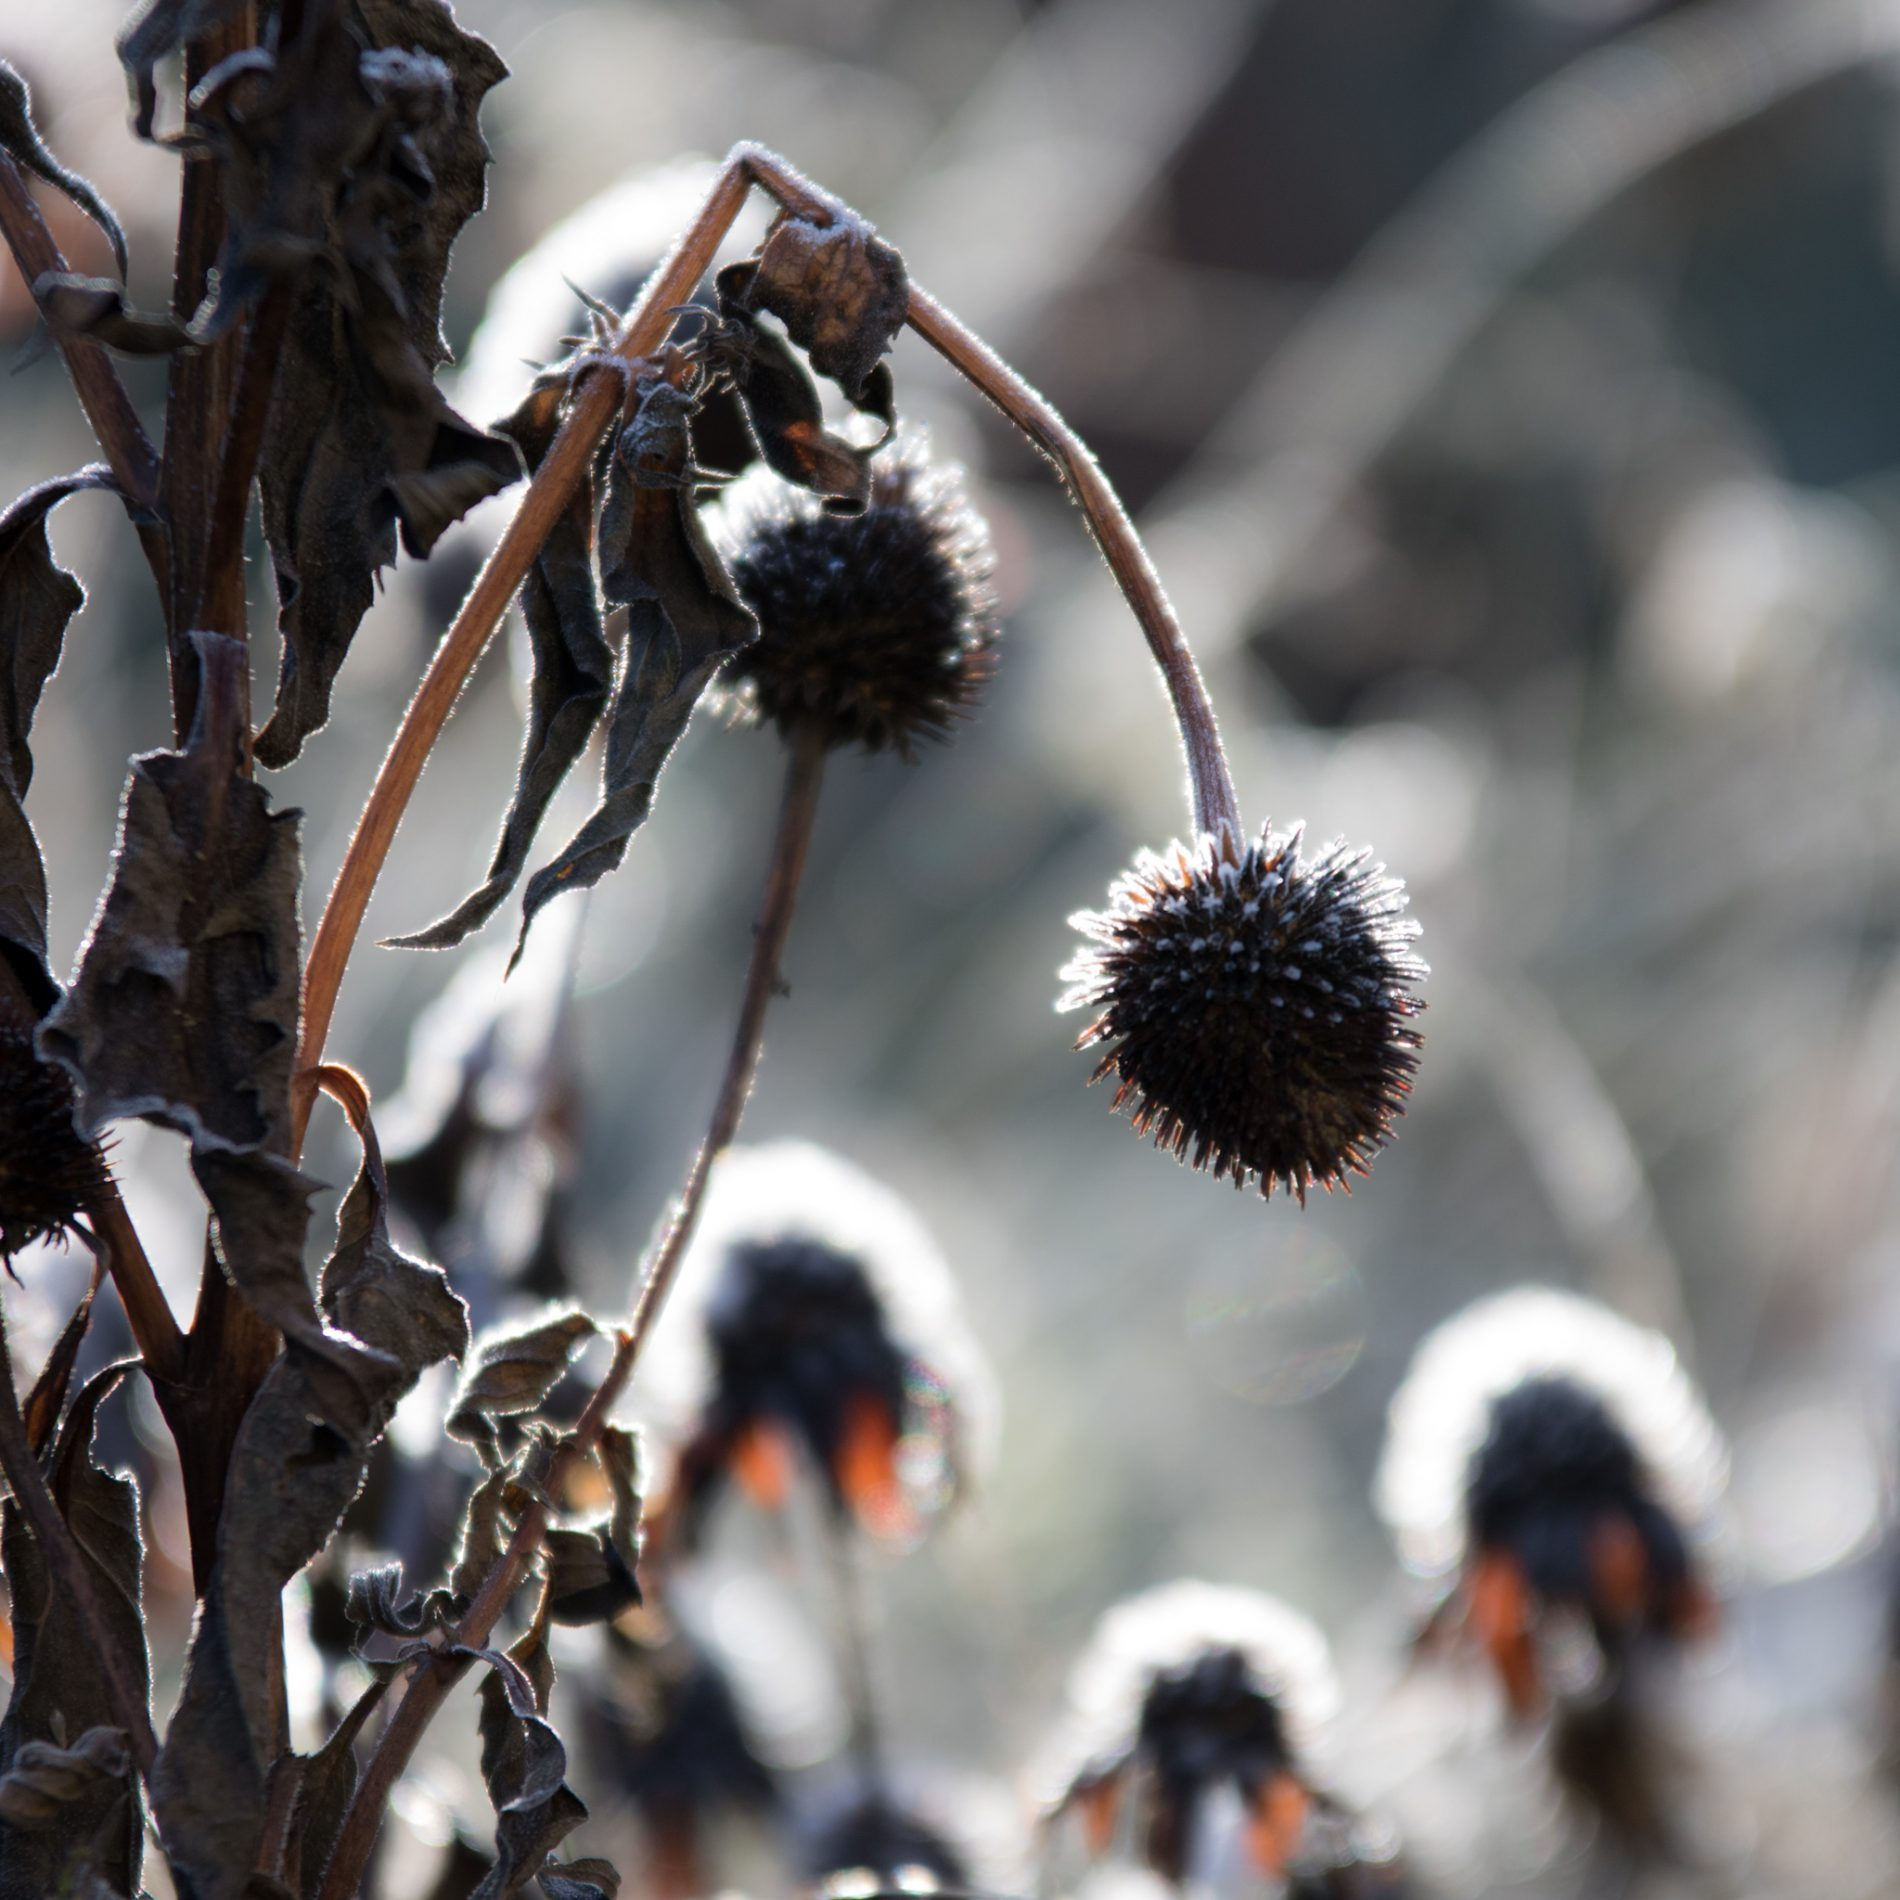 Echniacea, Winter